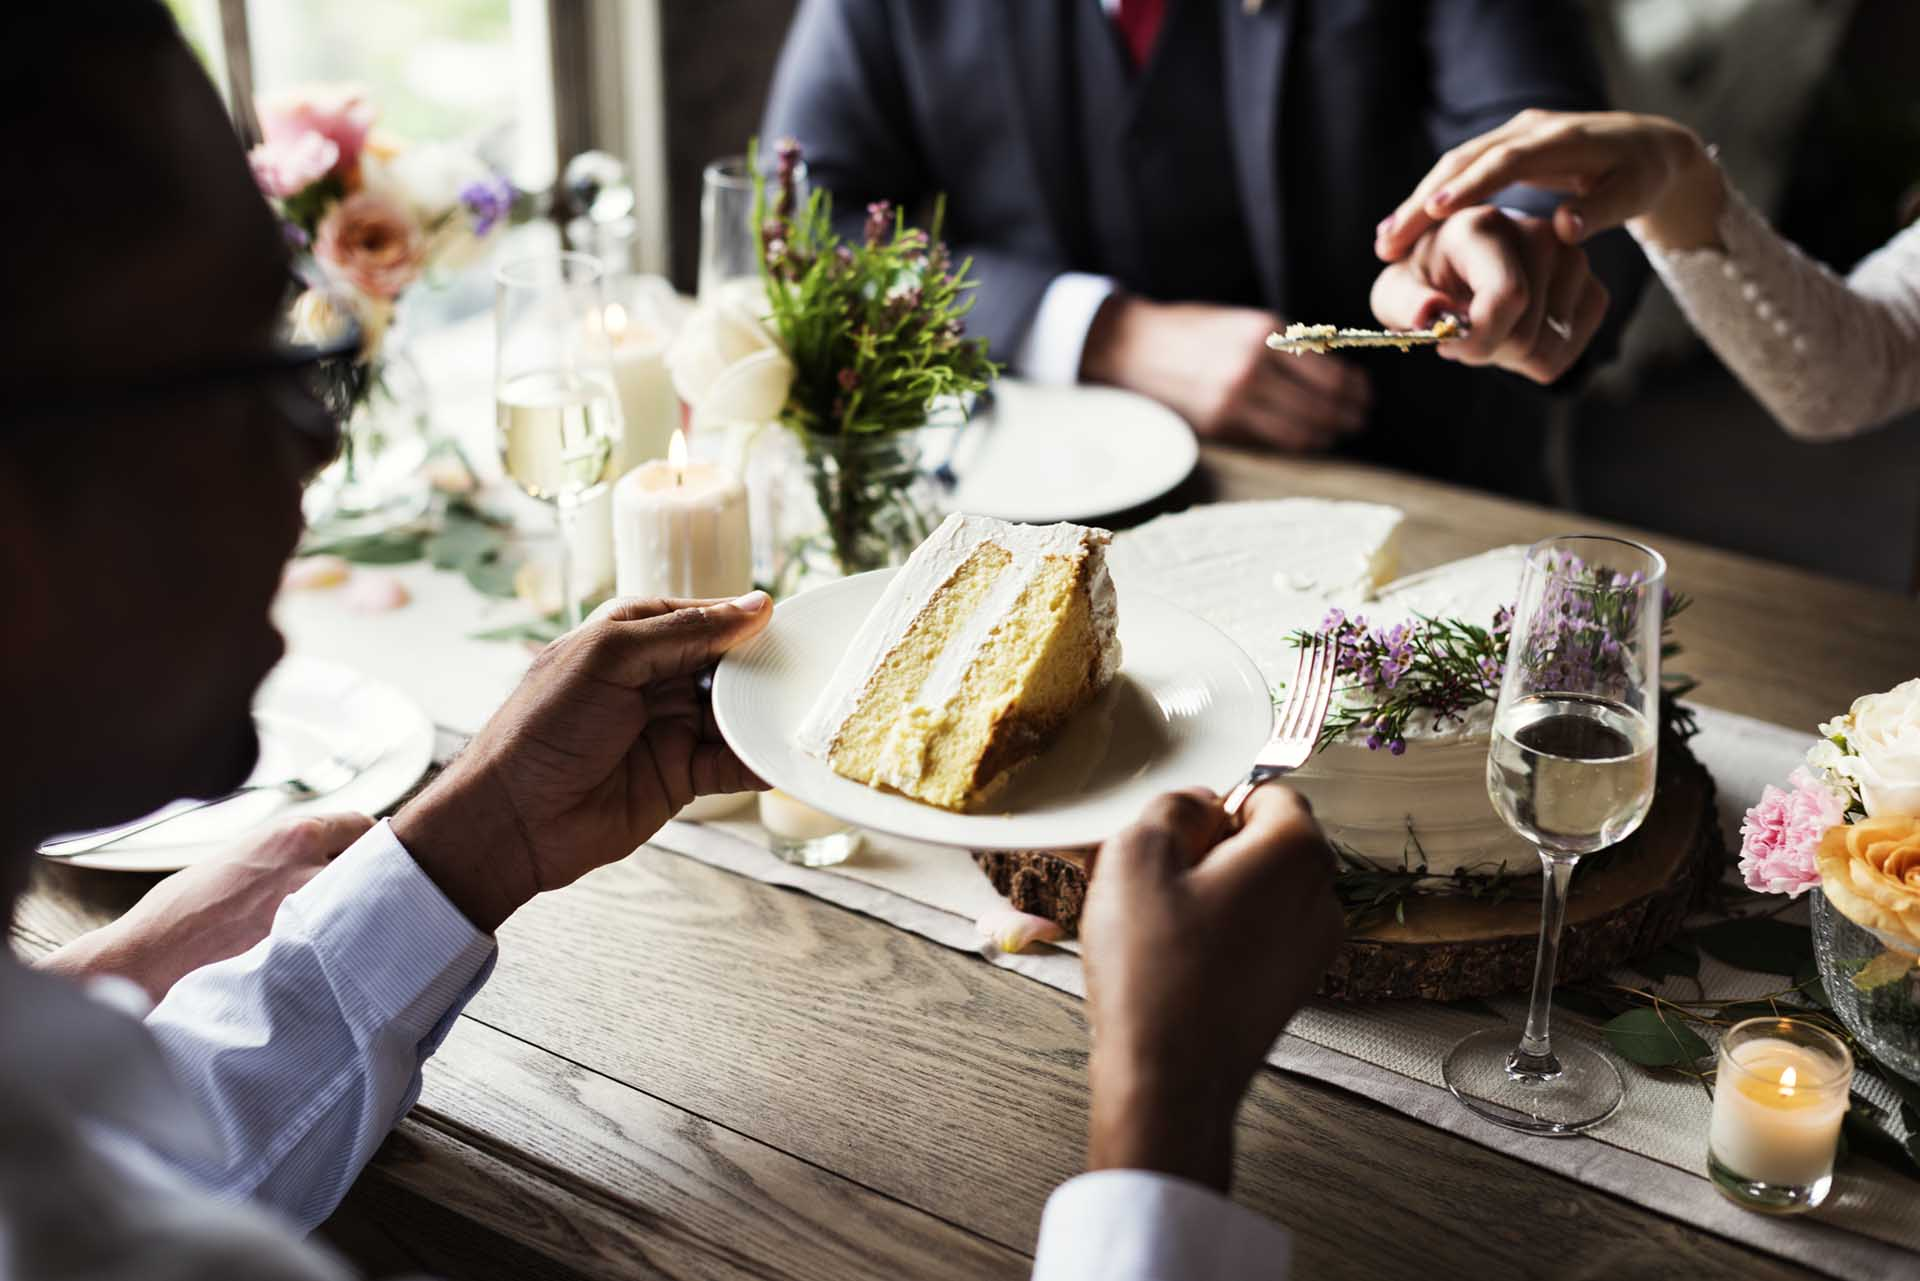 Wedding Cake Being Served